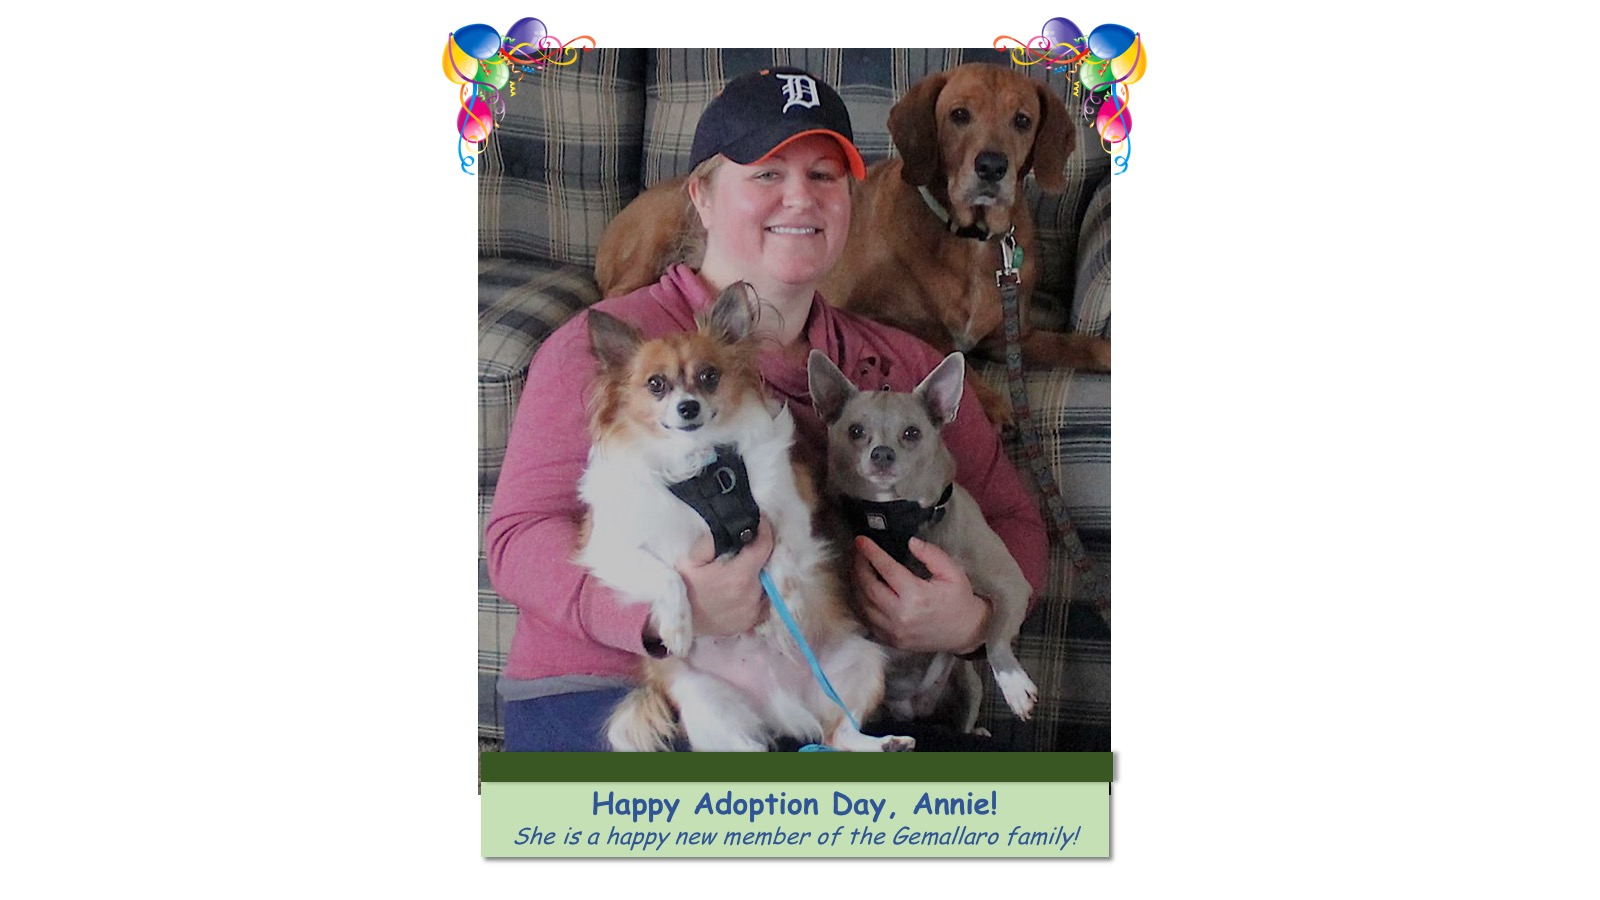 Annie_Adoption_Photo_2018.jpg